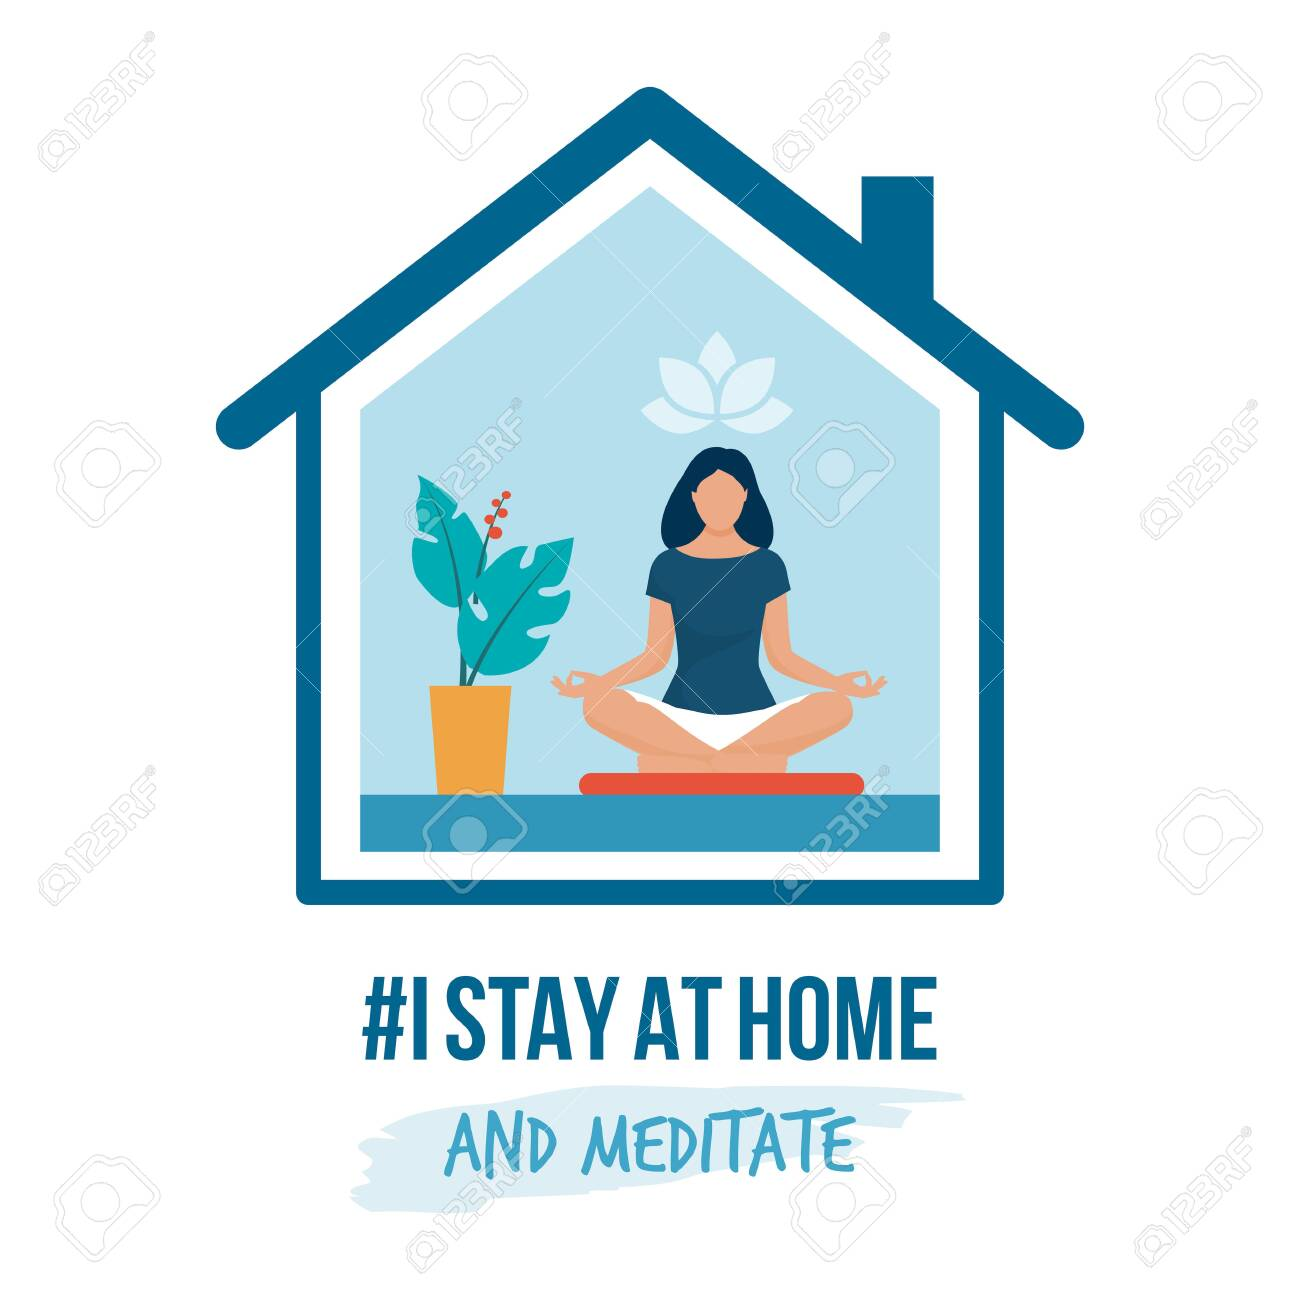 I stay at home awareness social media campaign and coronavirus prevention: woman sitting in the position and practicing meditation - 142774881